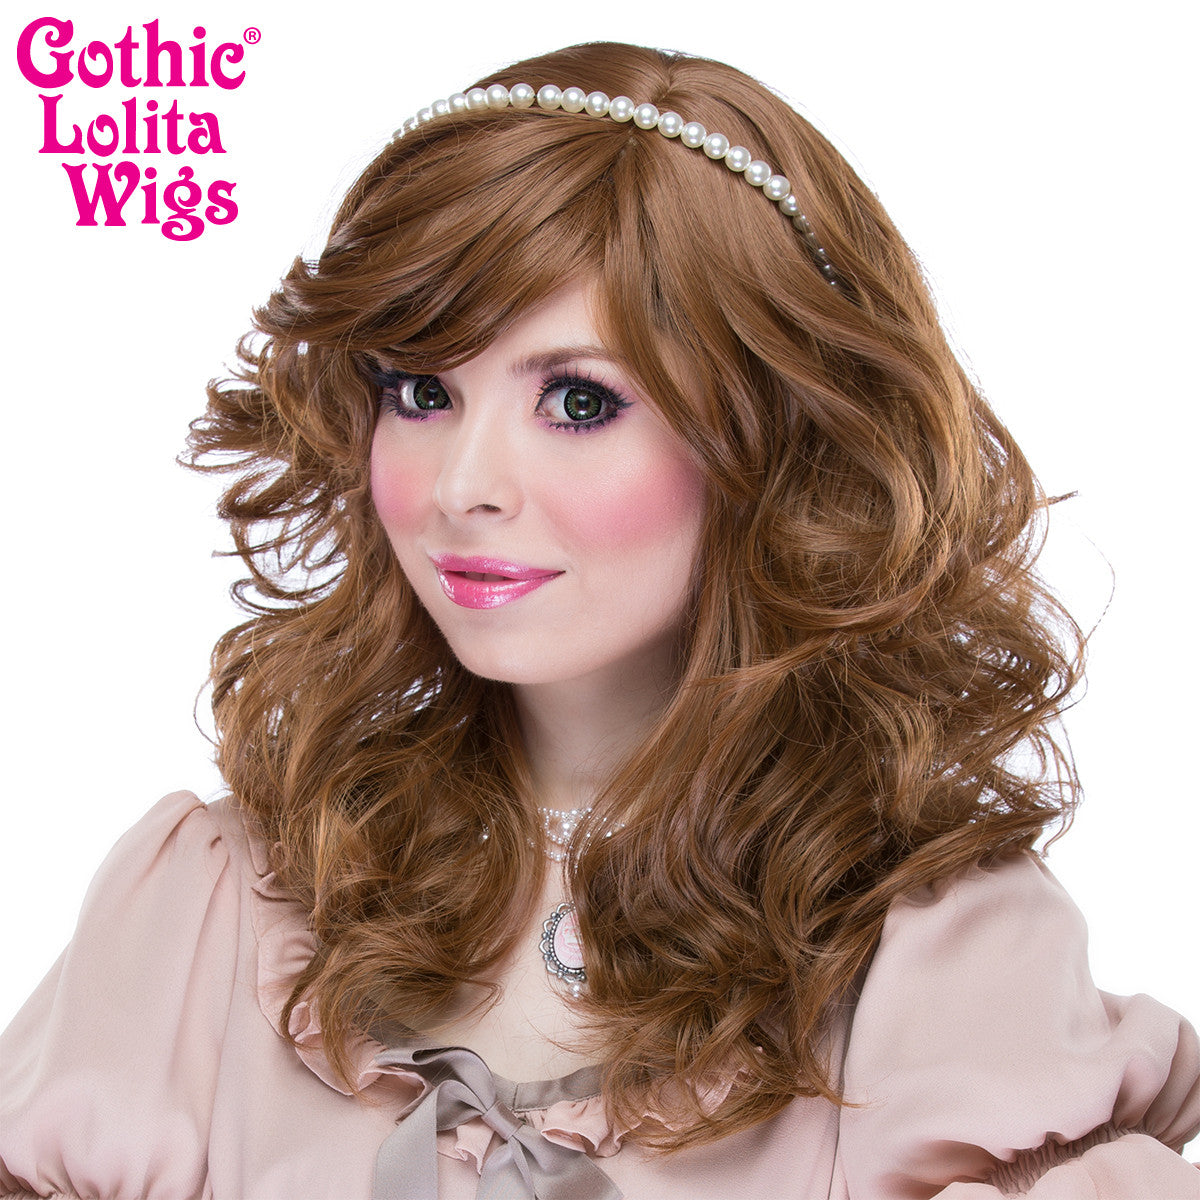 Gothic Lolita Wigs® <br>Girly Girl Collection - Caramel Brown Mix -00416